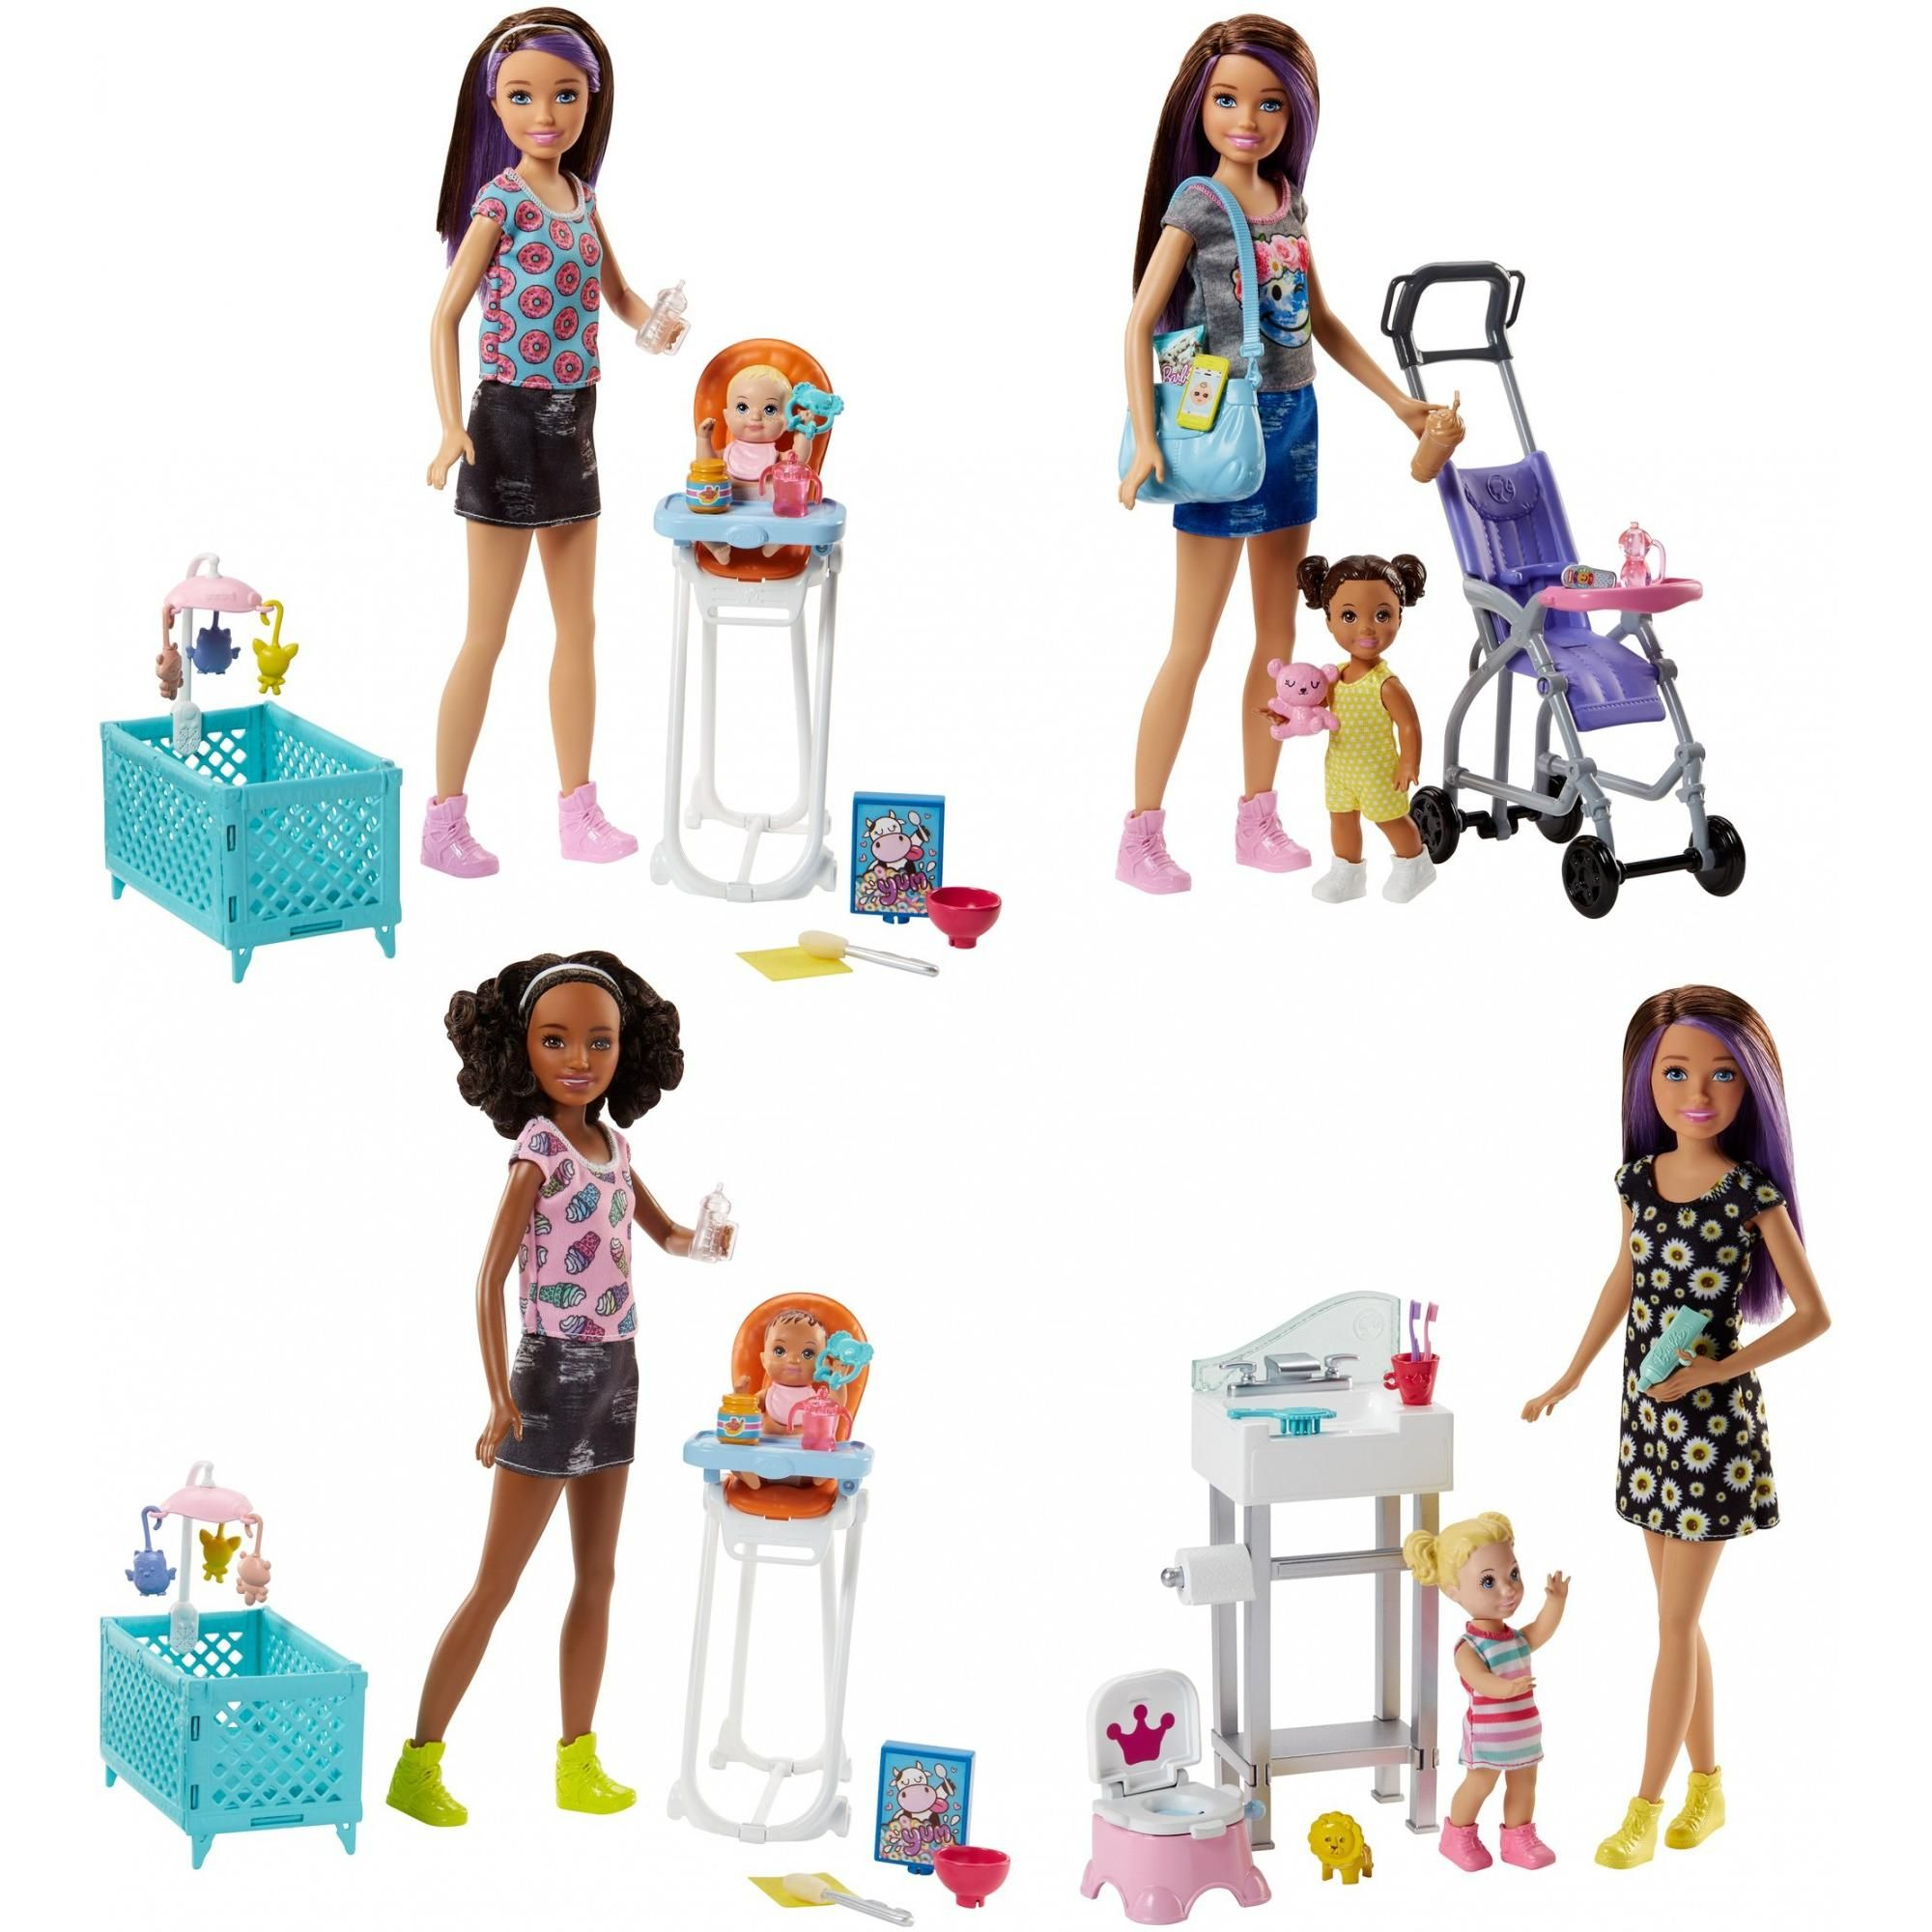 Toys Barbie sets, Barbie skipper, Barbie sisters